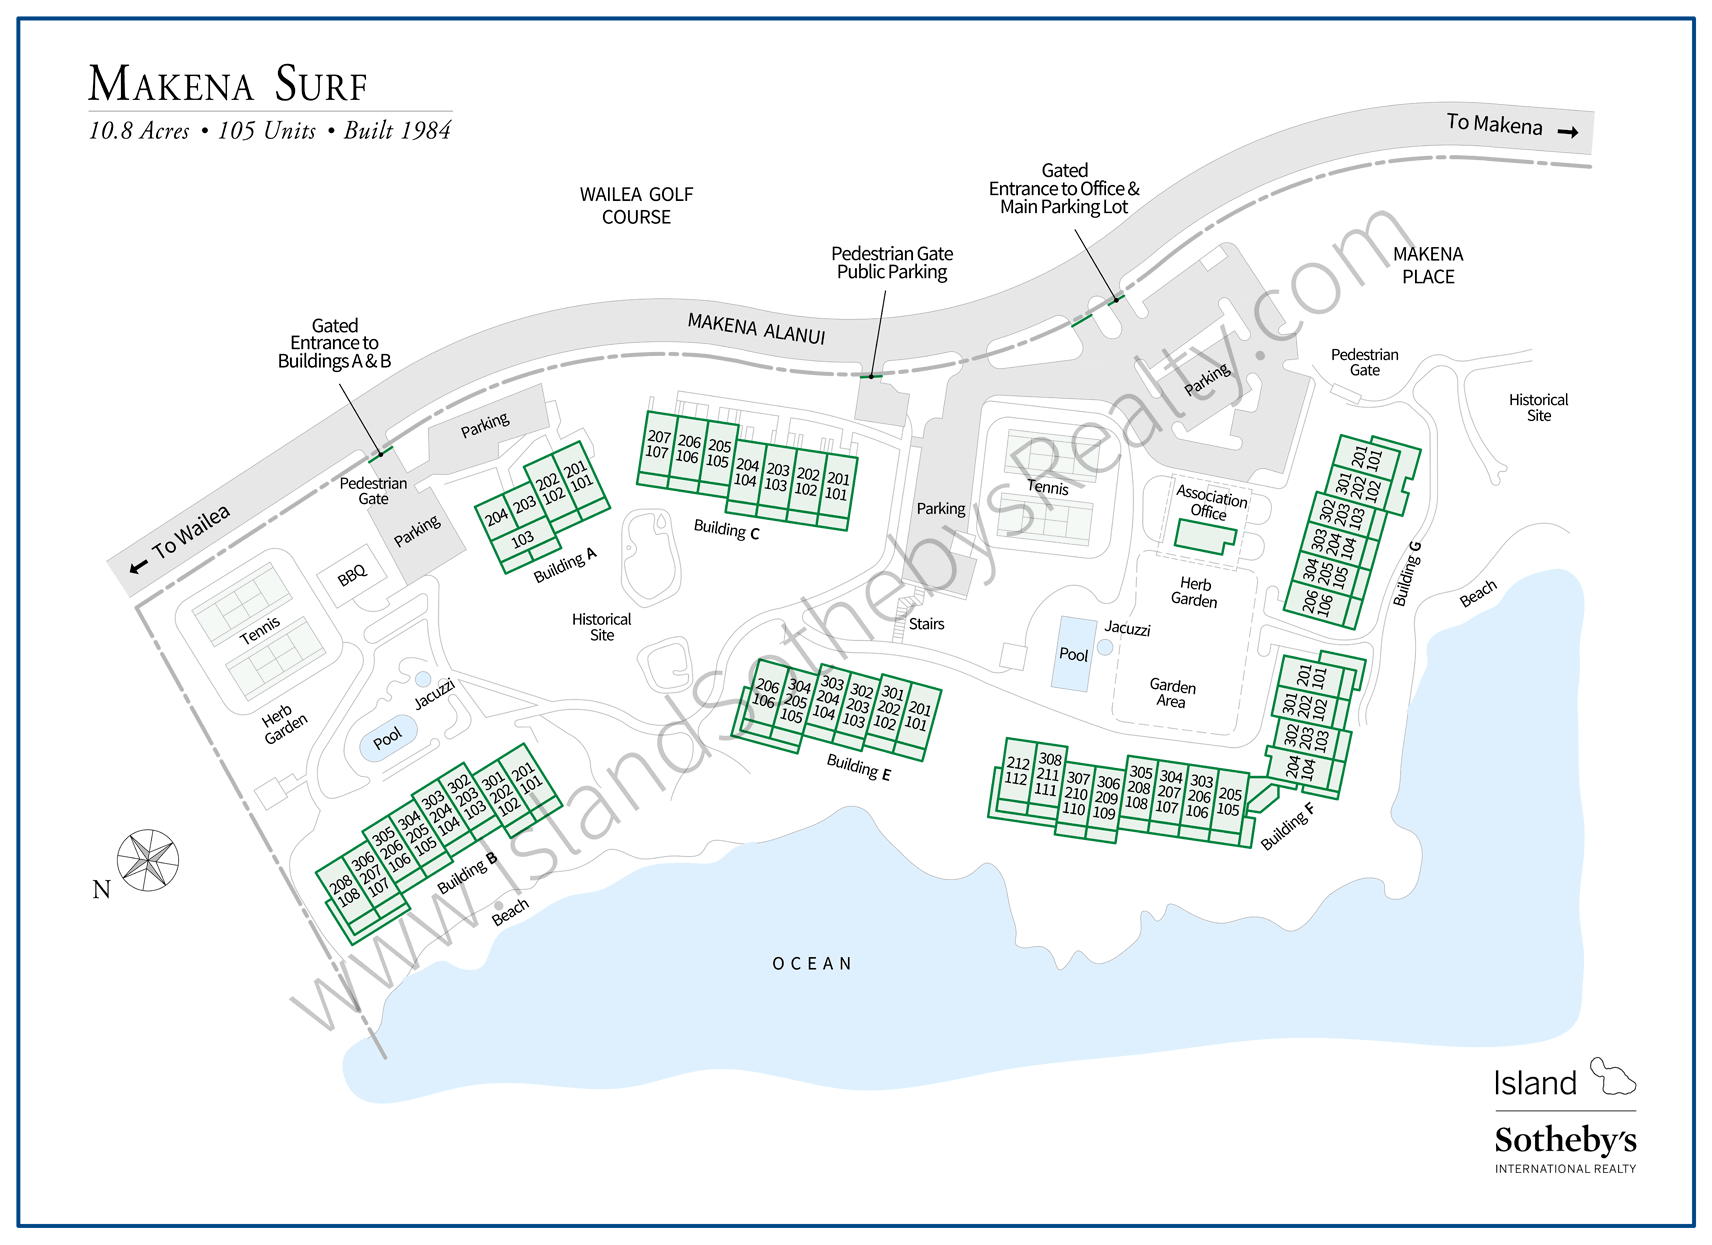 Map of Makena Surf Maui